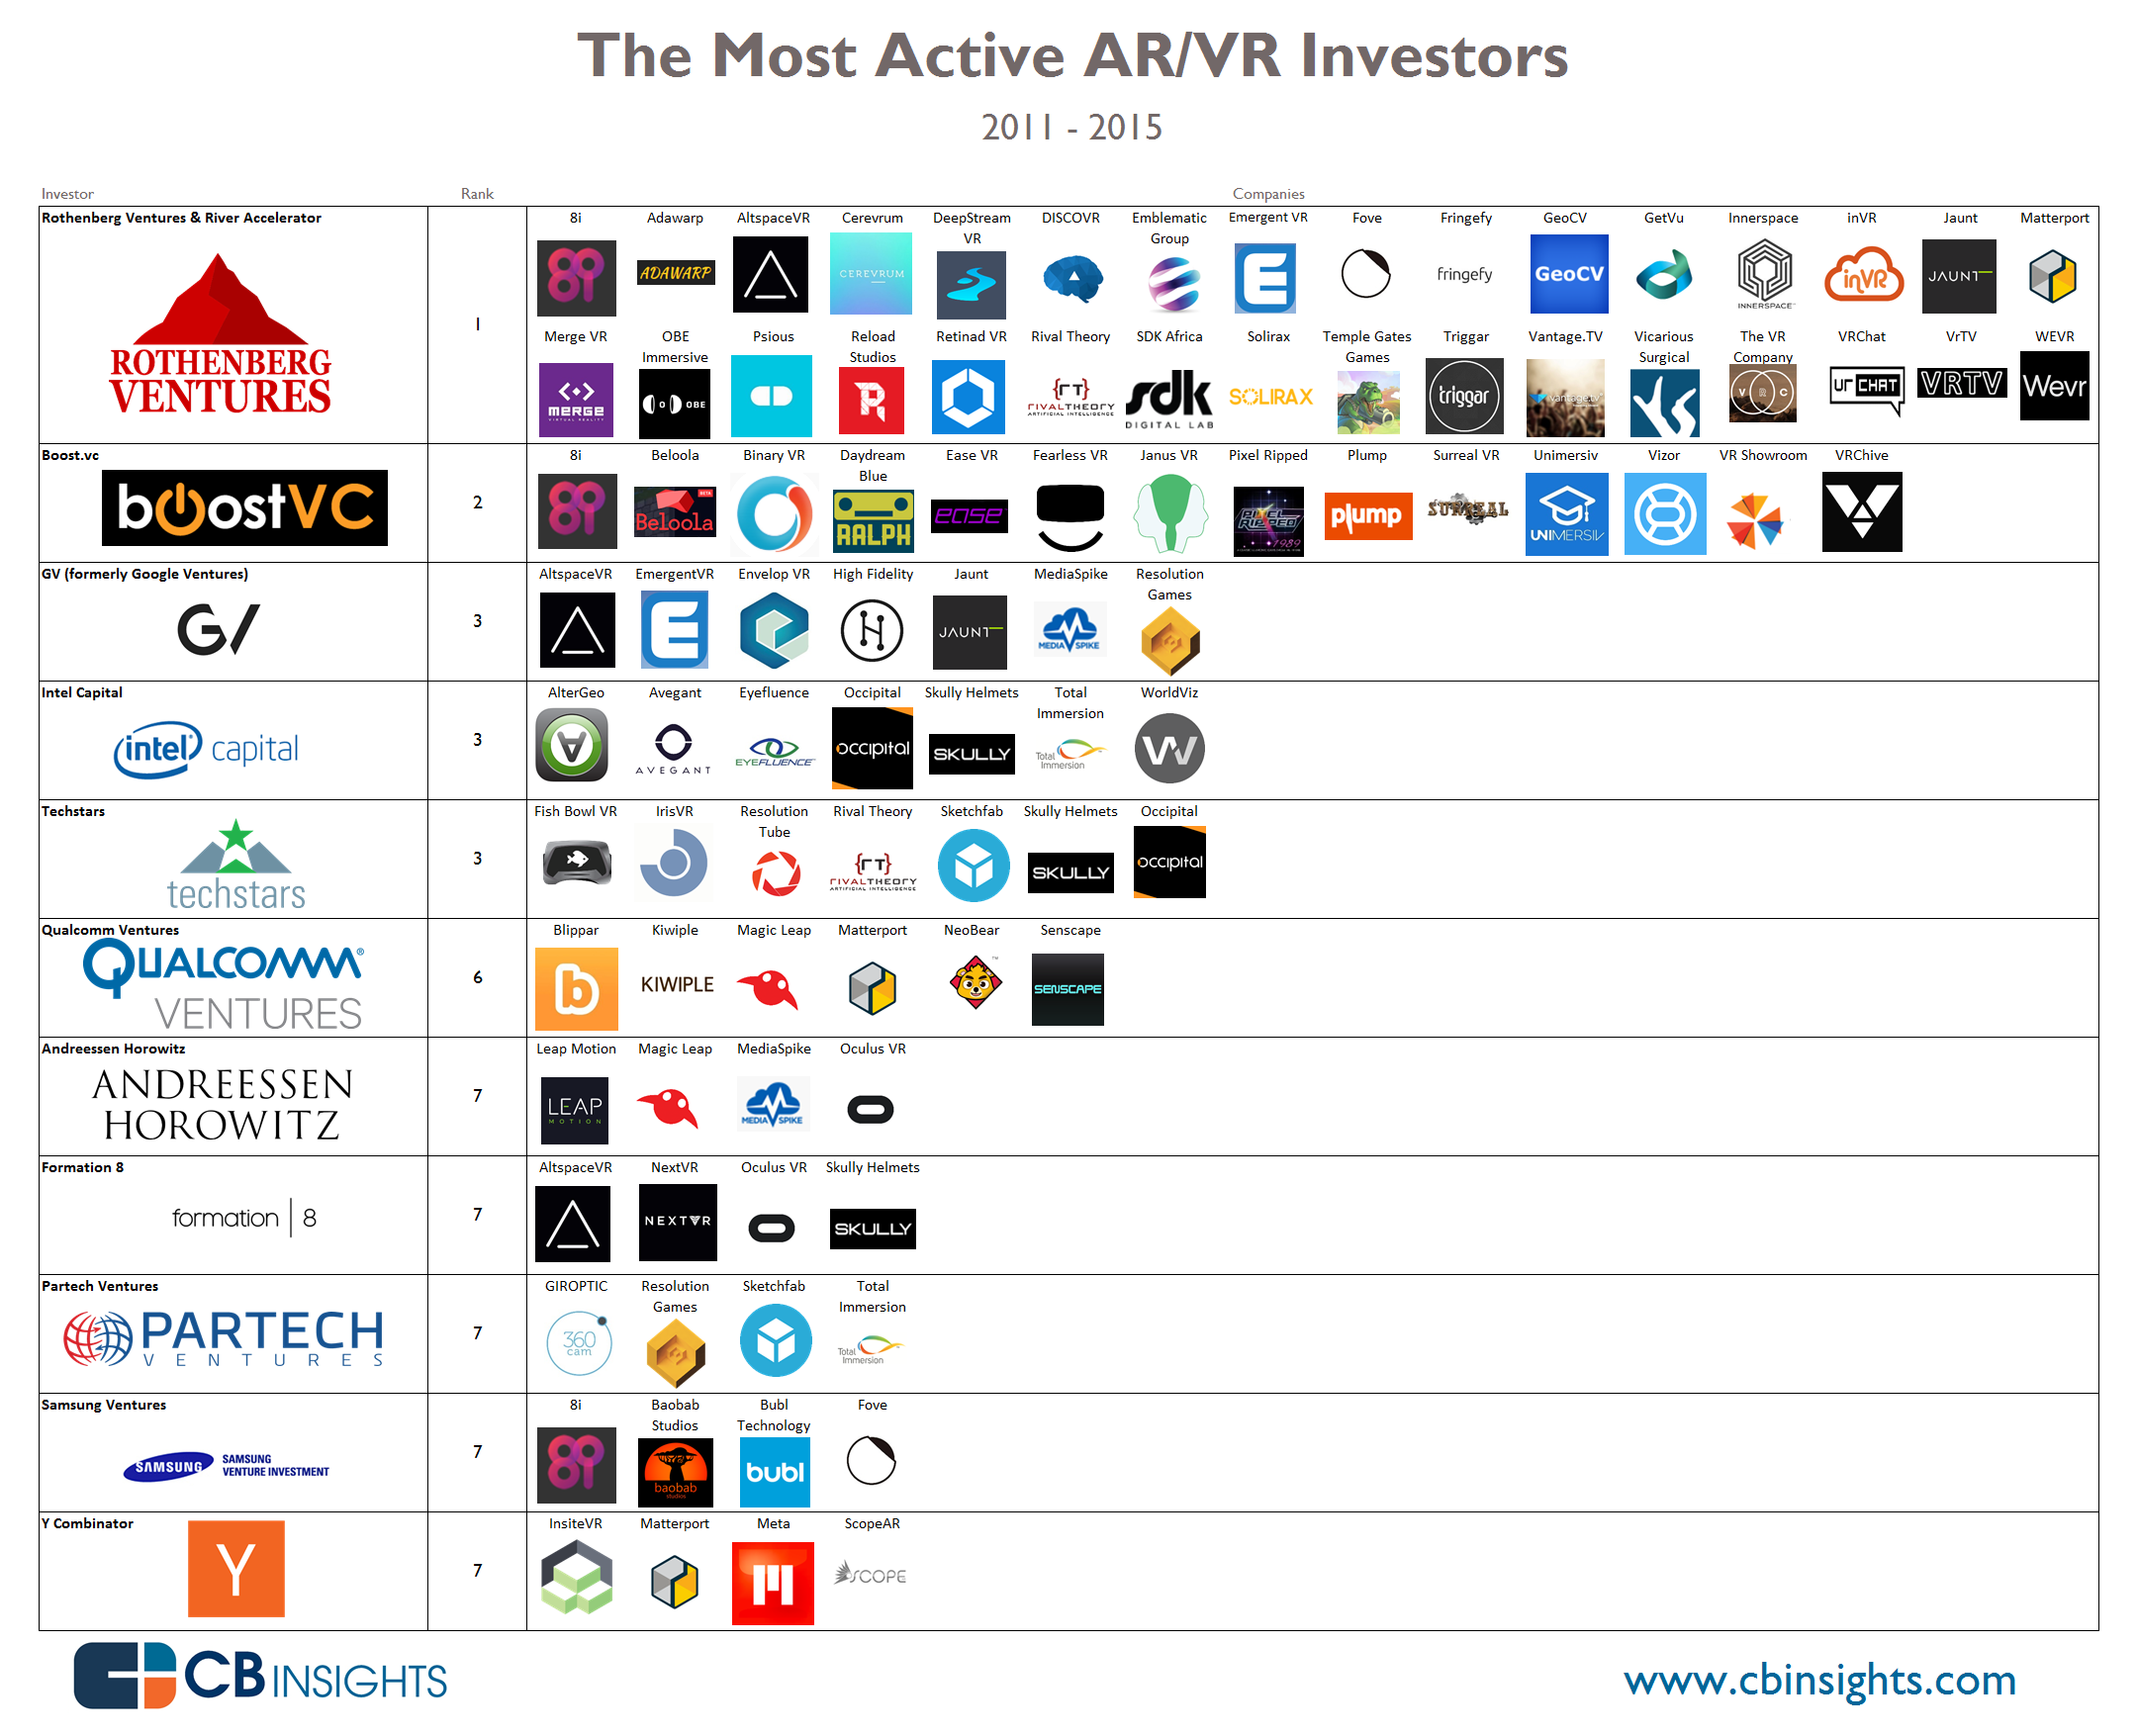 The most active VR and AR Investors 2011-2015